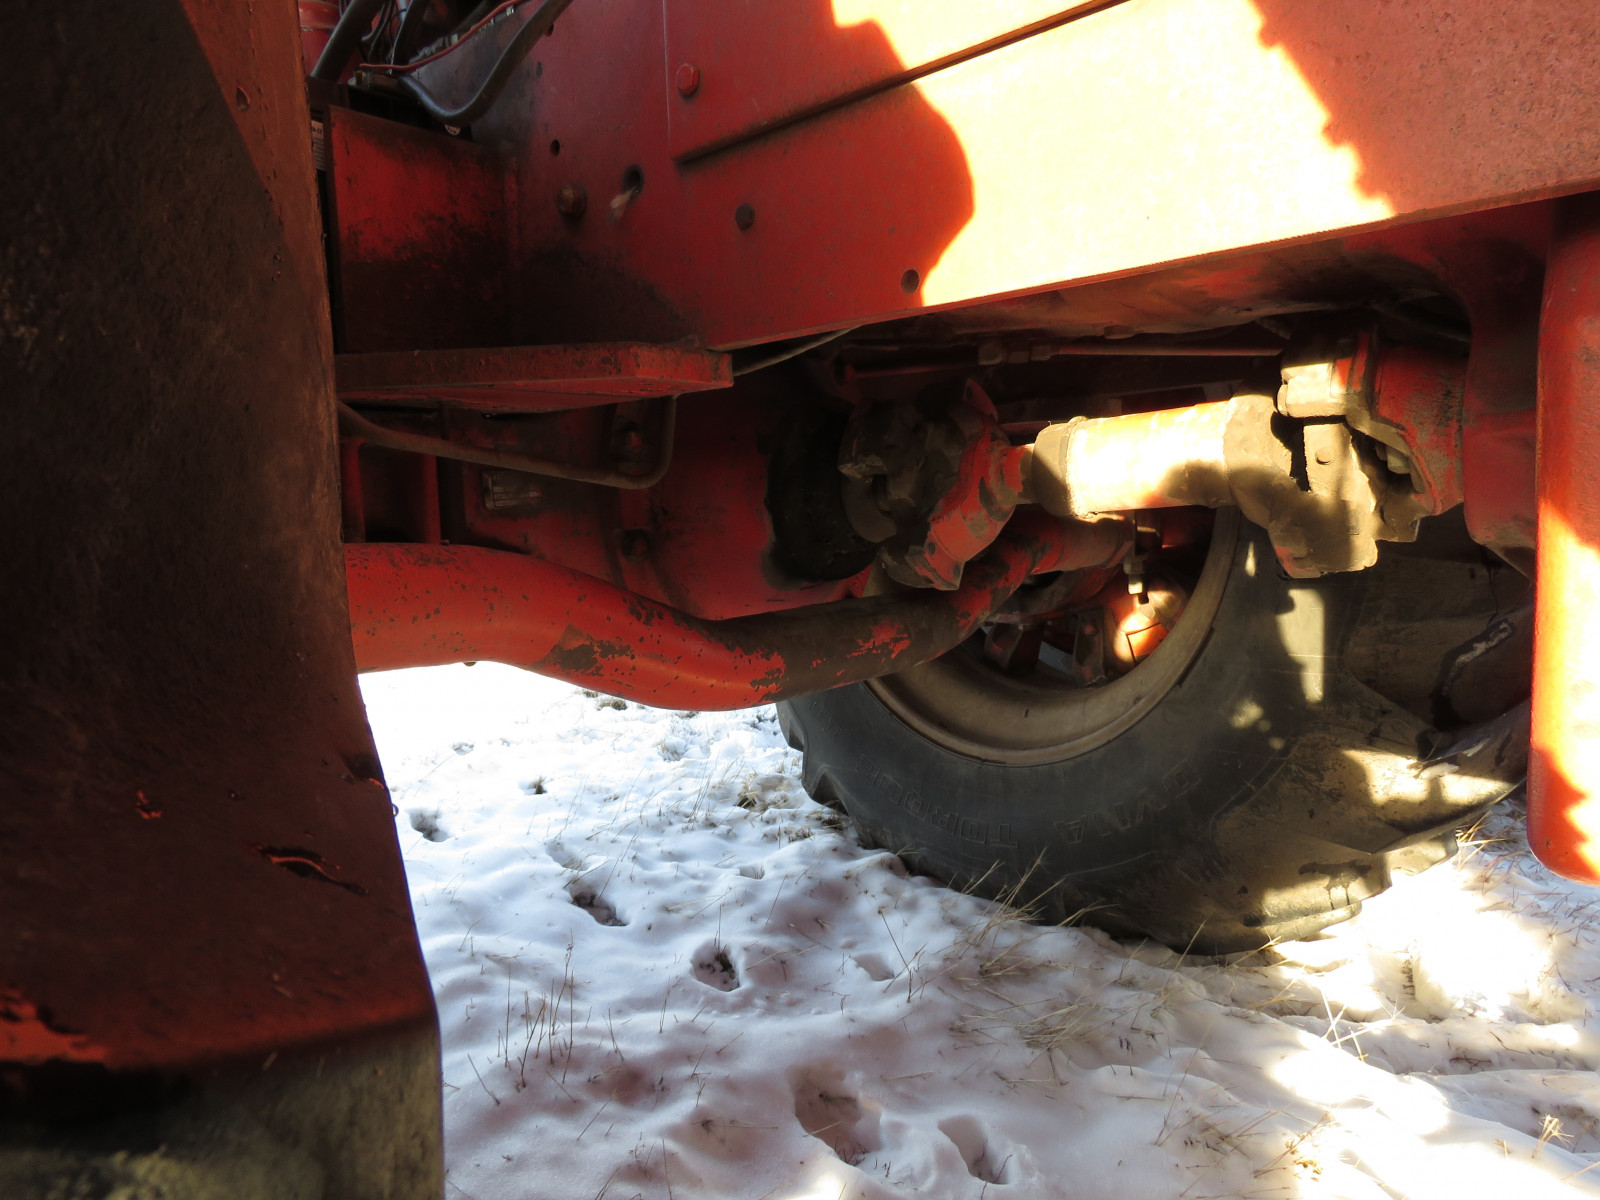 Case 4890 4WD Tractor 8861280 - Image 13